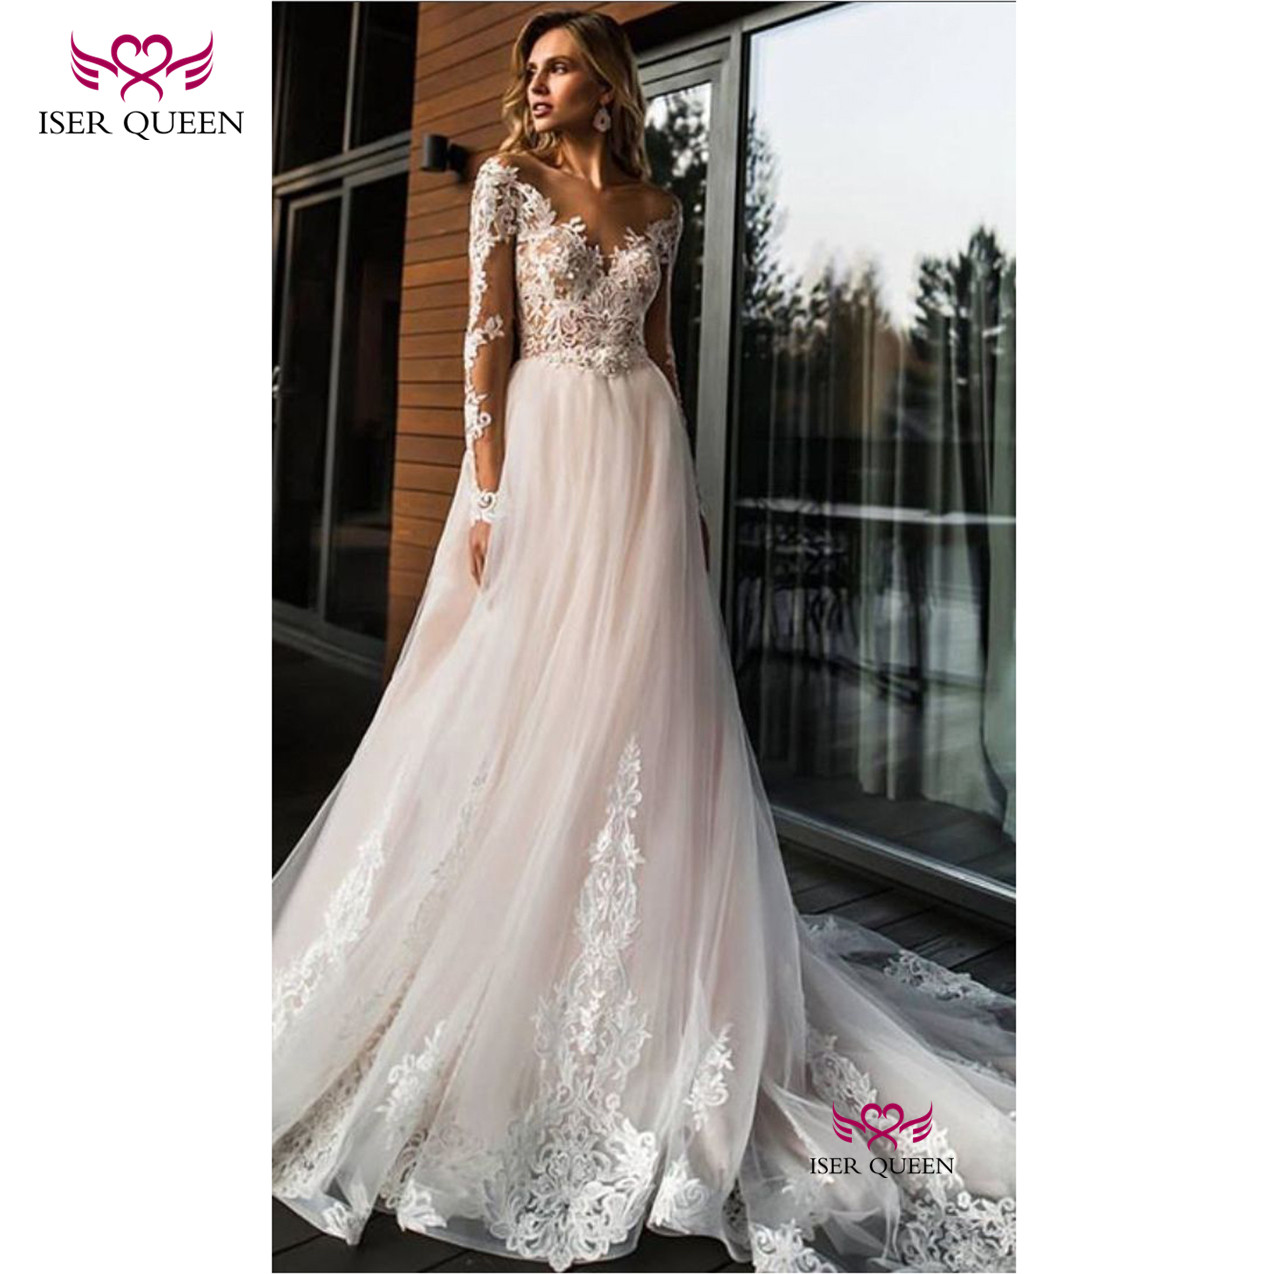 Charming V-neck Long Sleeves With Embroidery And Lace Vestido De Noiva Praia Tulle Champagne Button Illusion Chapel Train W0575